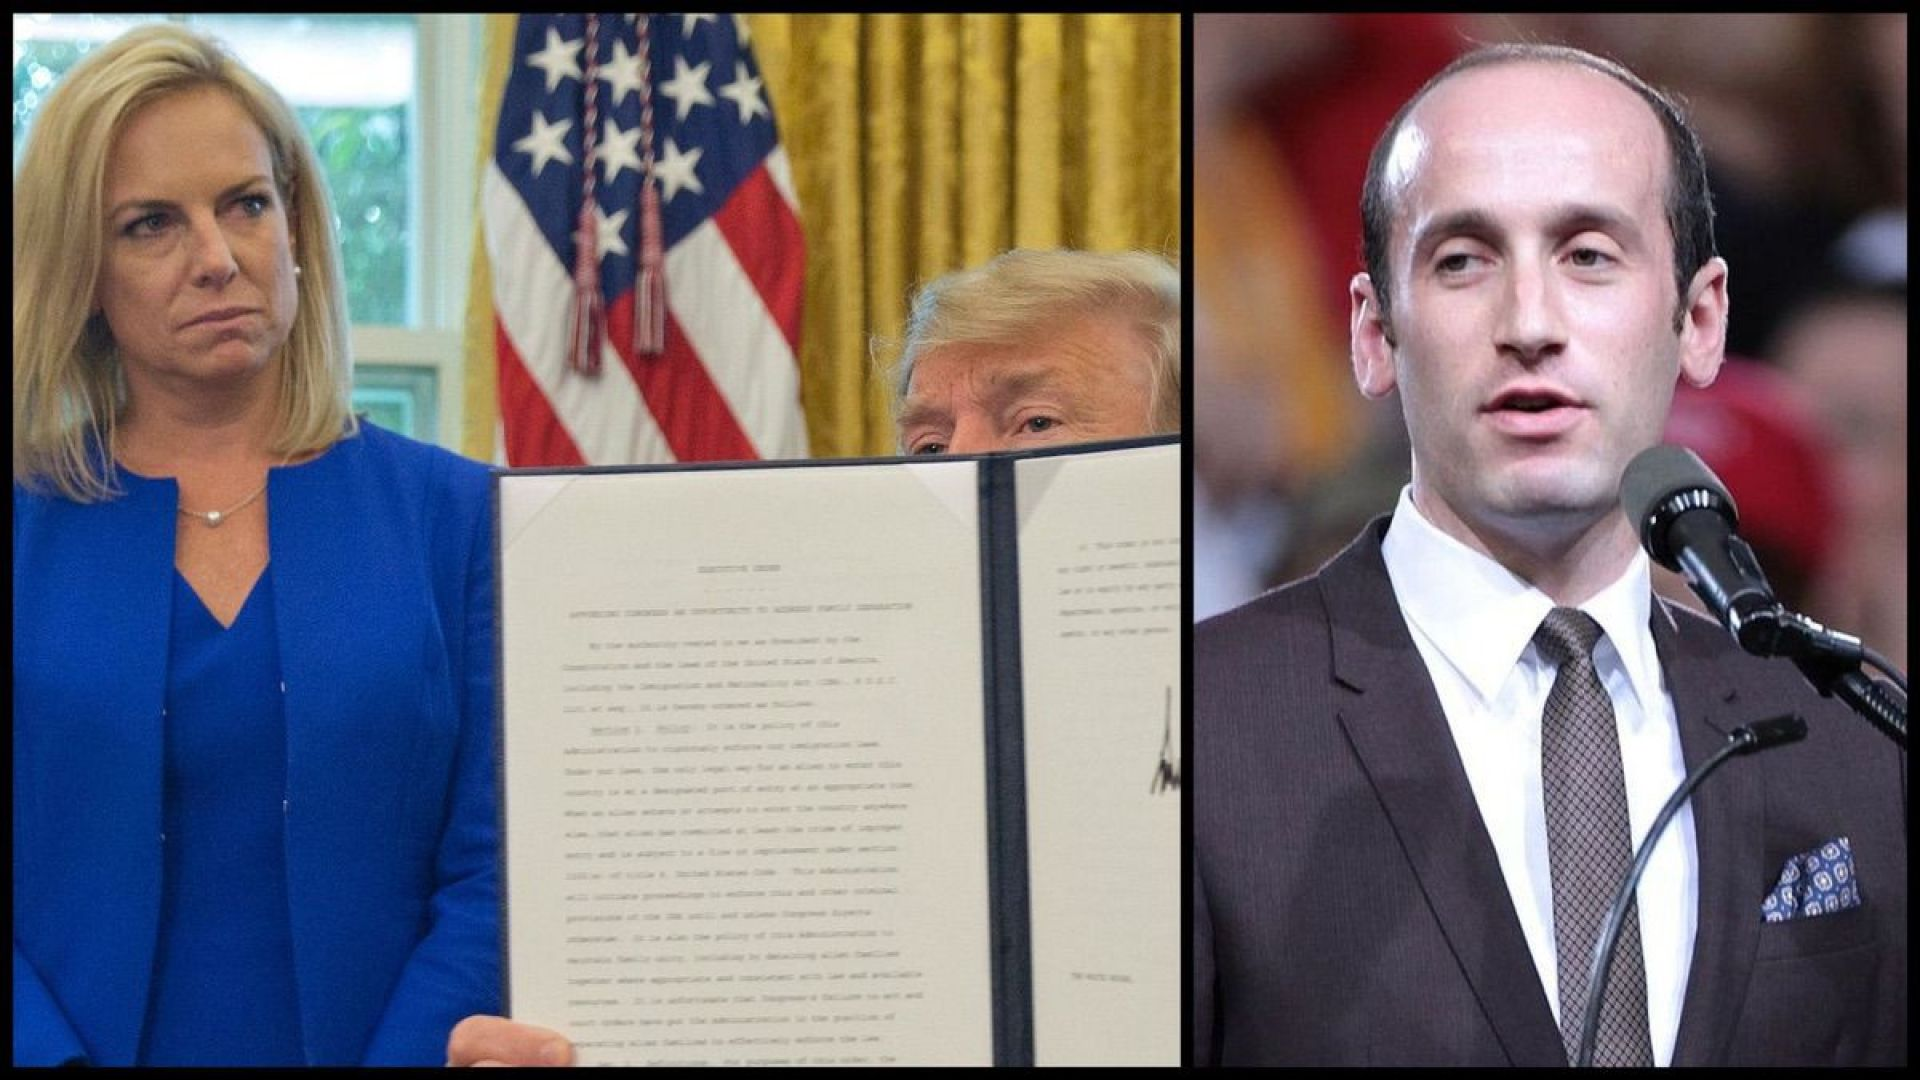 Then-Homeland Security Secretary Kirstjen Nielsen standing with President Donald Trump as he holds up an executive order he signed to end family separations in the Oval Office - June 20, 2018. (AP Photo/Pablo Martinez Monsivais) Senior White House Adviser Stephen Miller (Gage Skidmore)